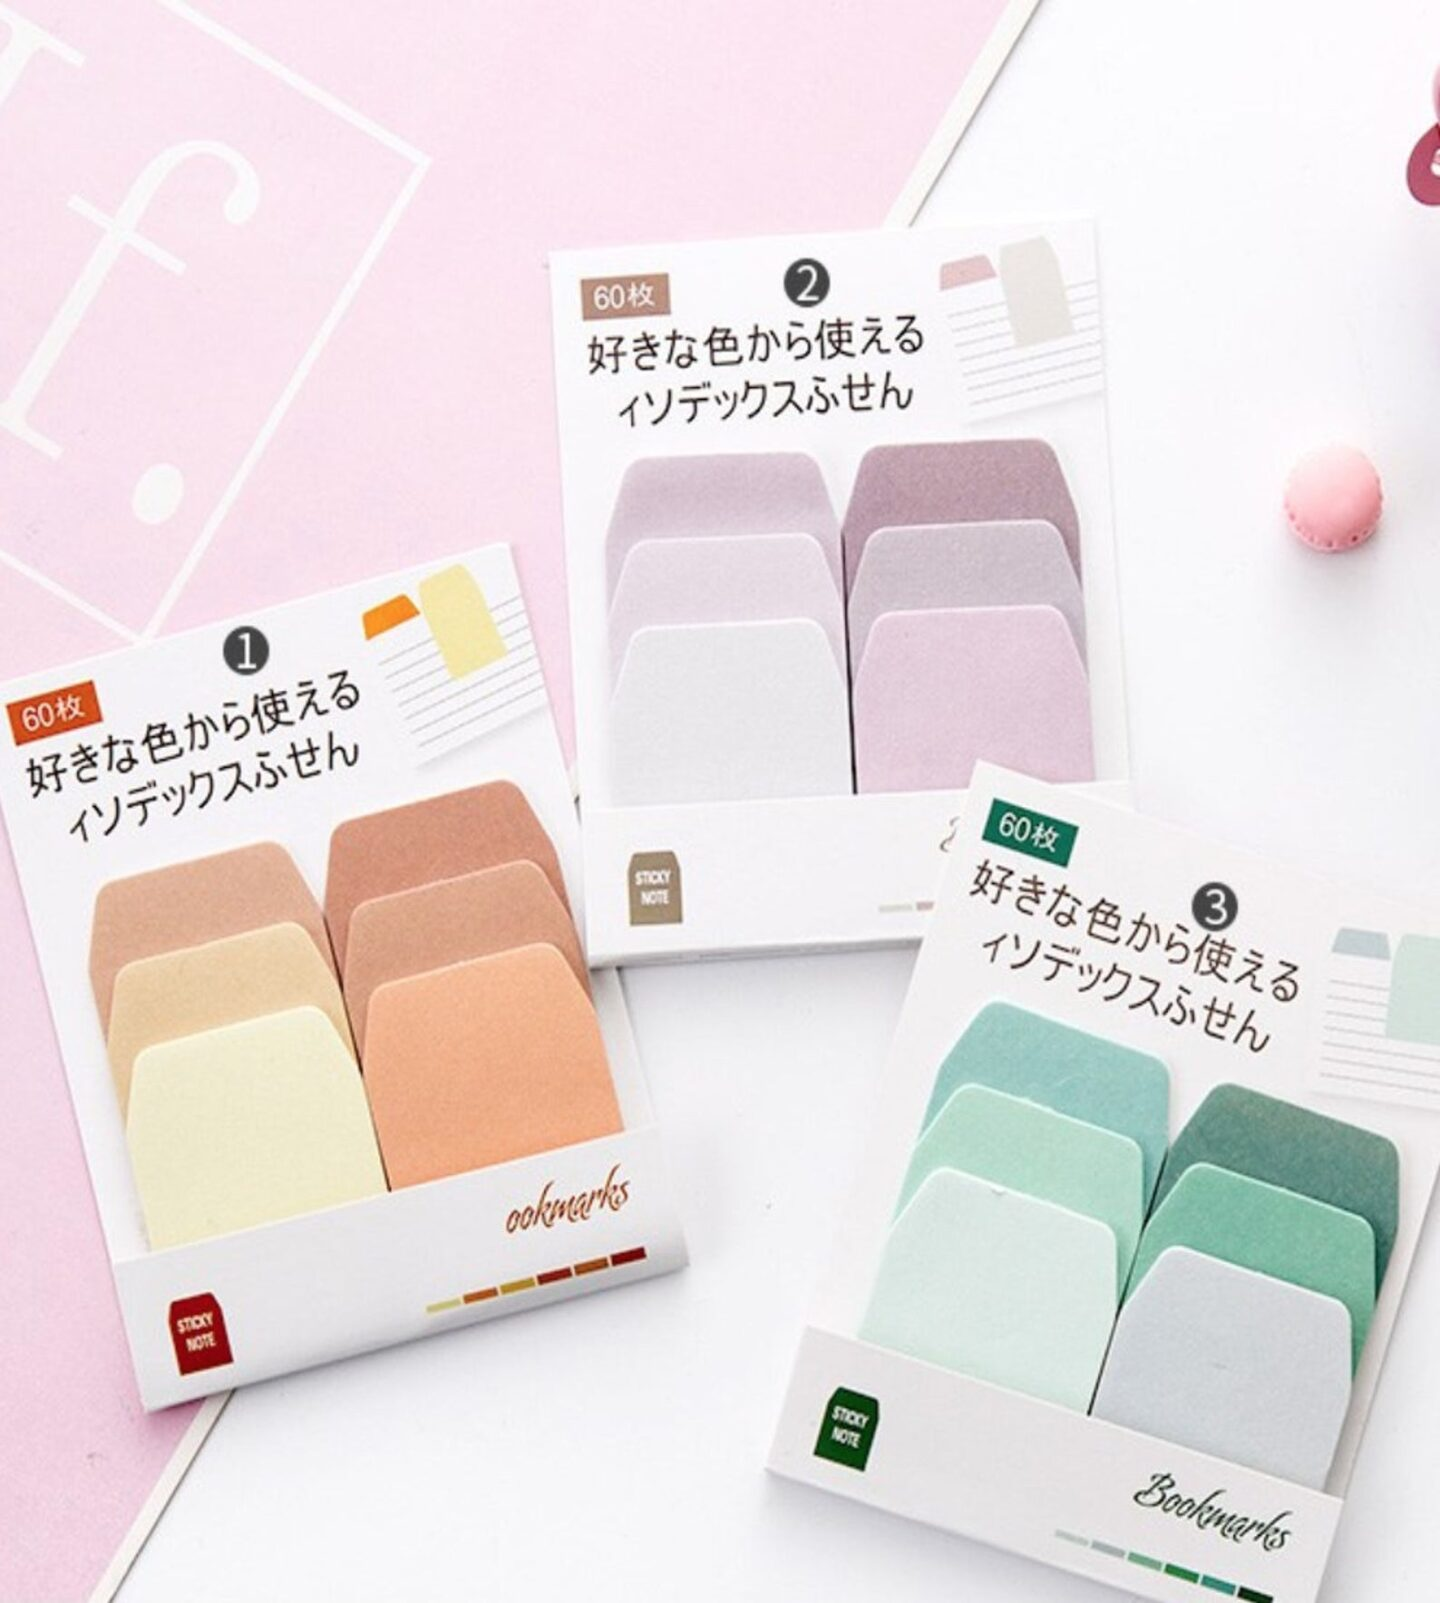 Sticky tabs and Diary sticky notes - Multi coloured sticky notes perfect gift idea for bullet journals